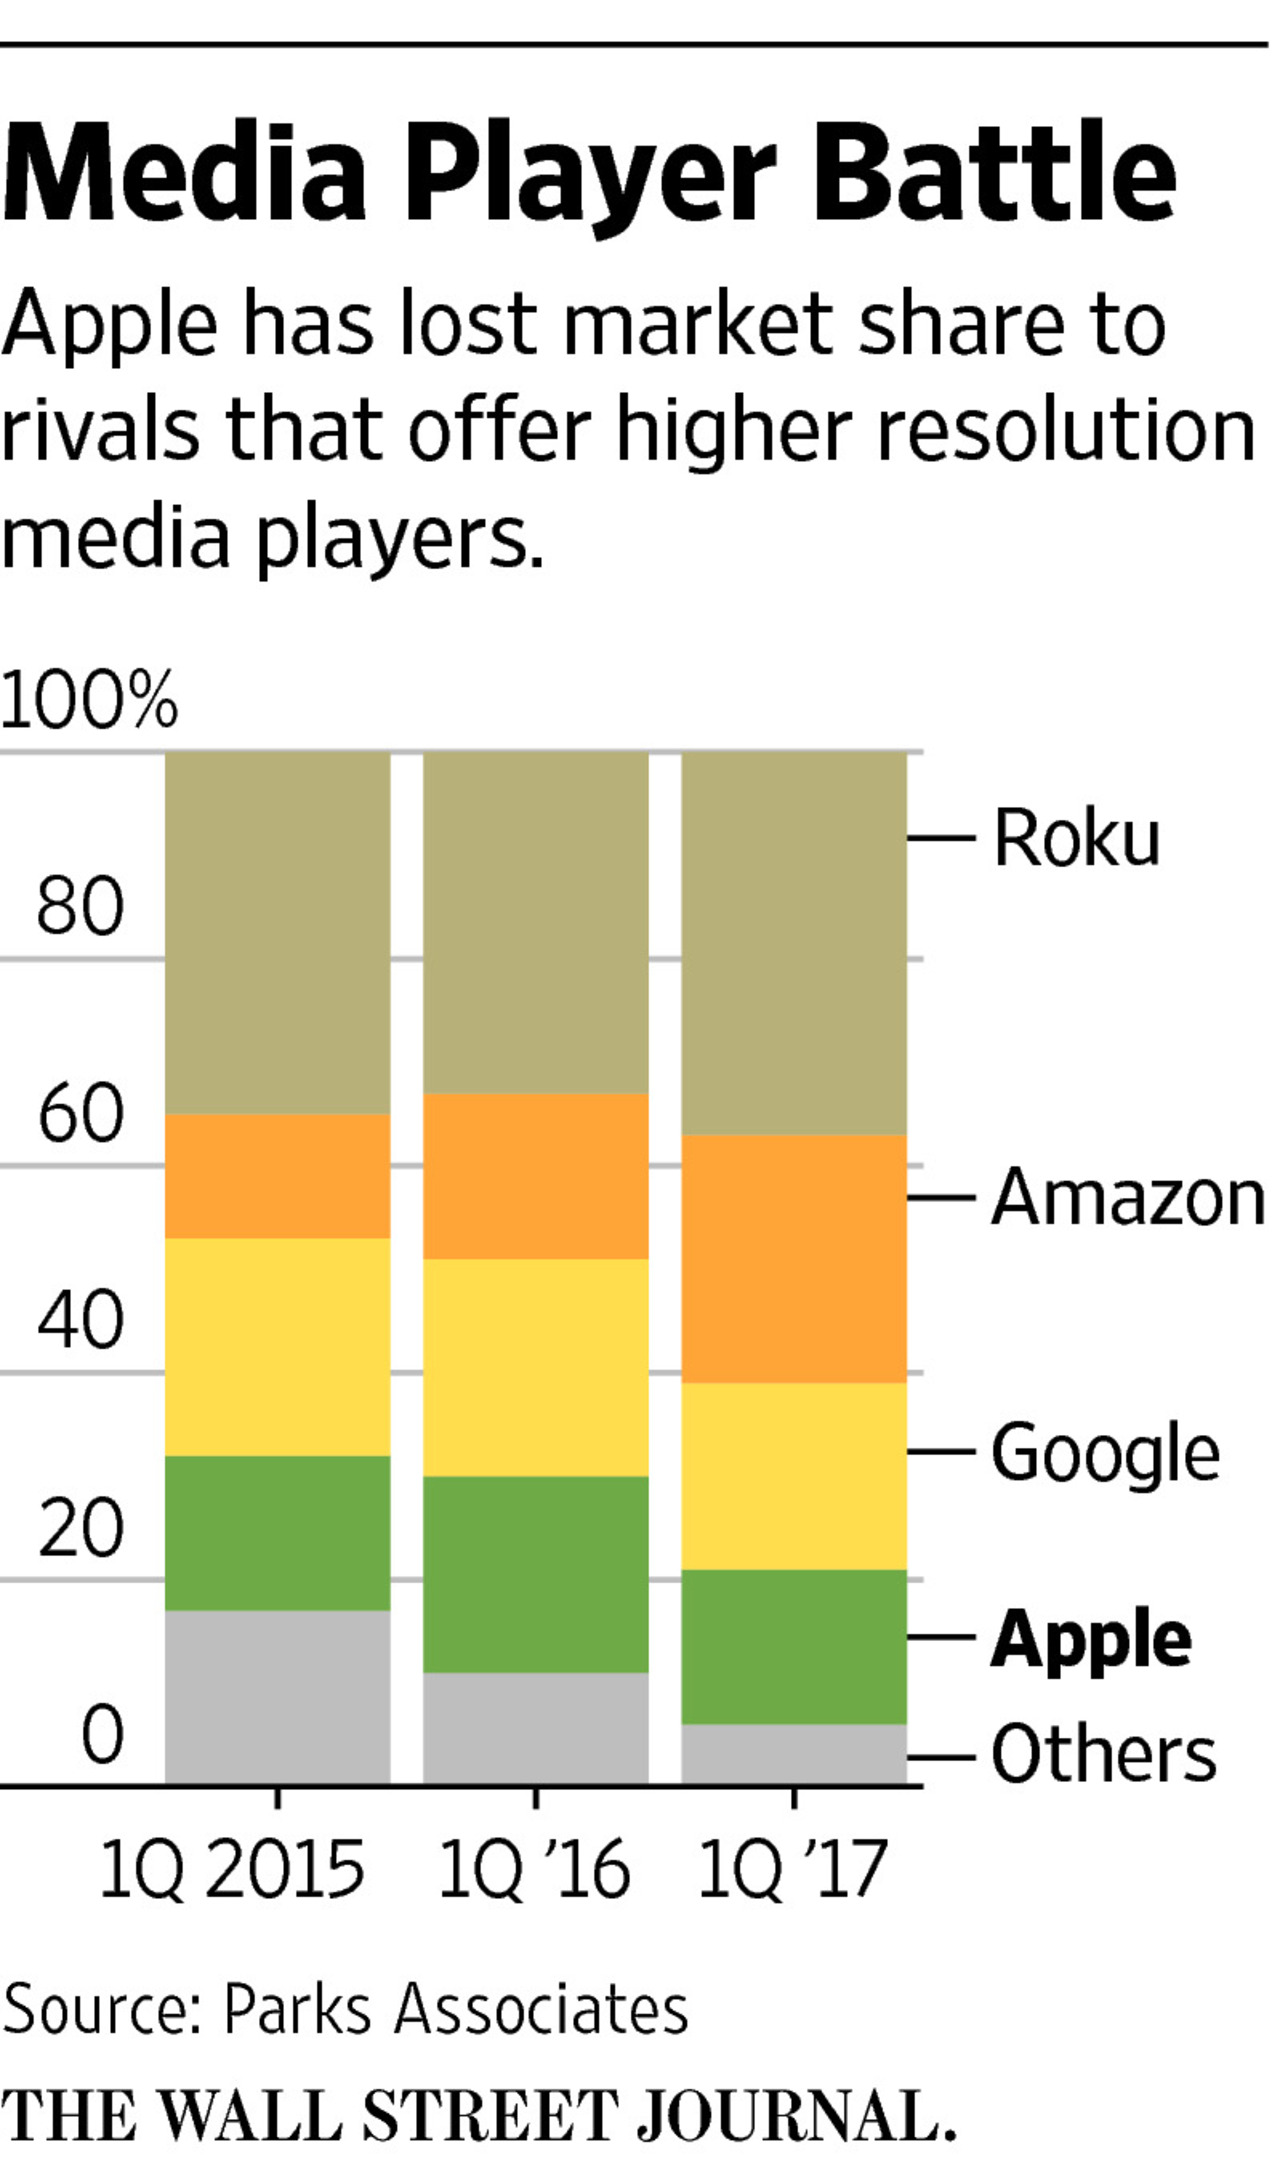 WSJ: Apple does not want to raise price of 4K movies